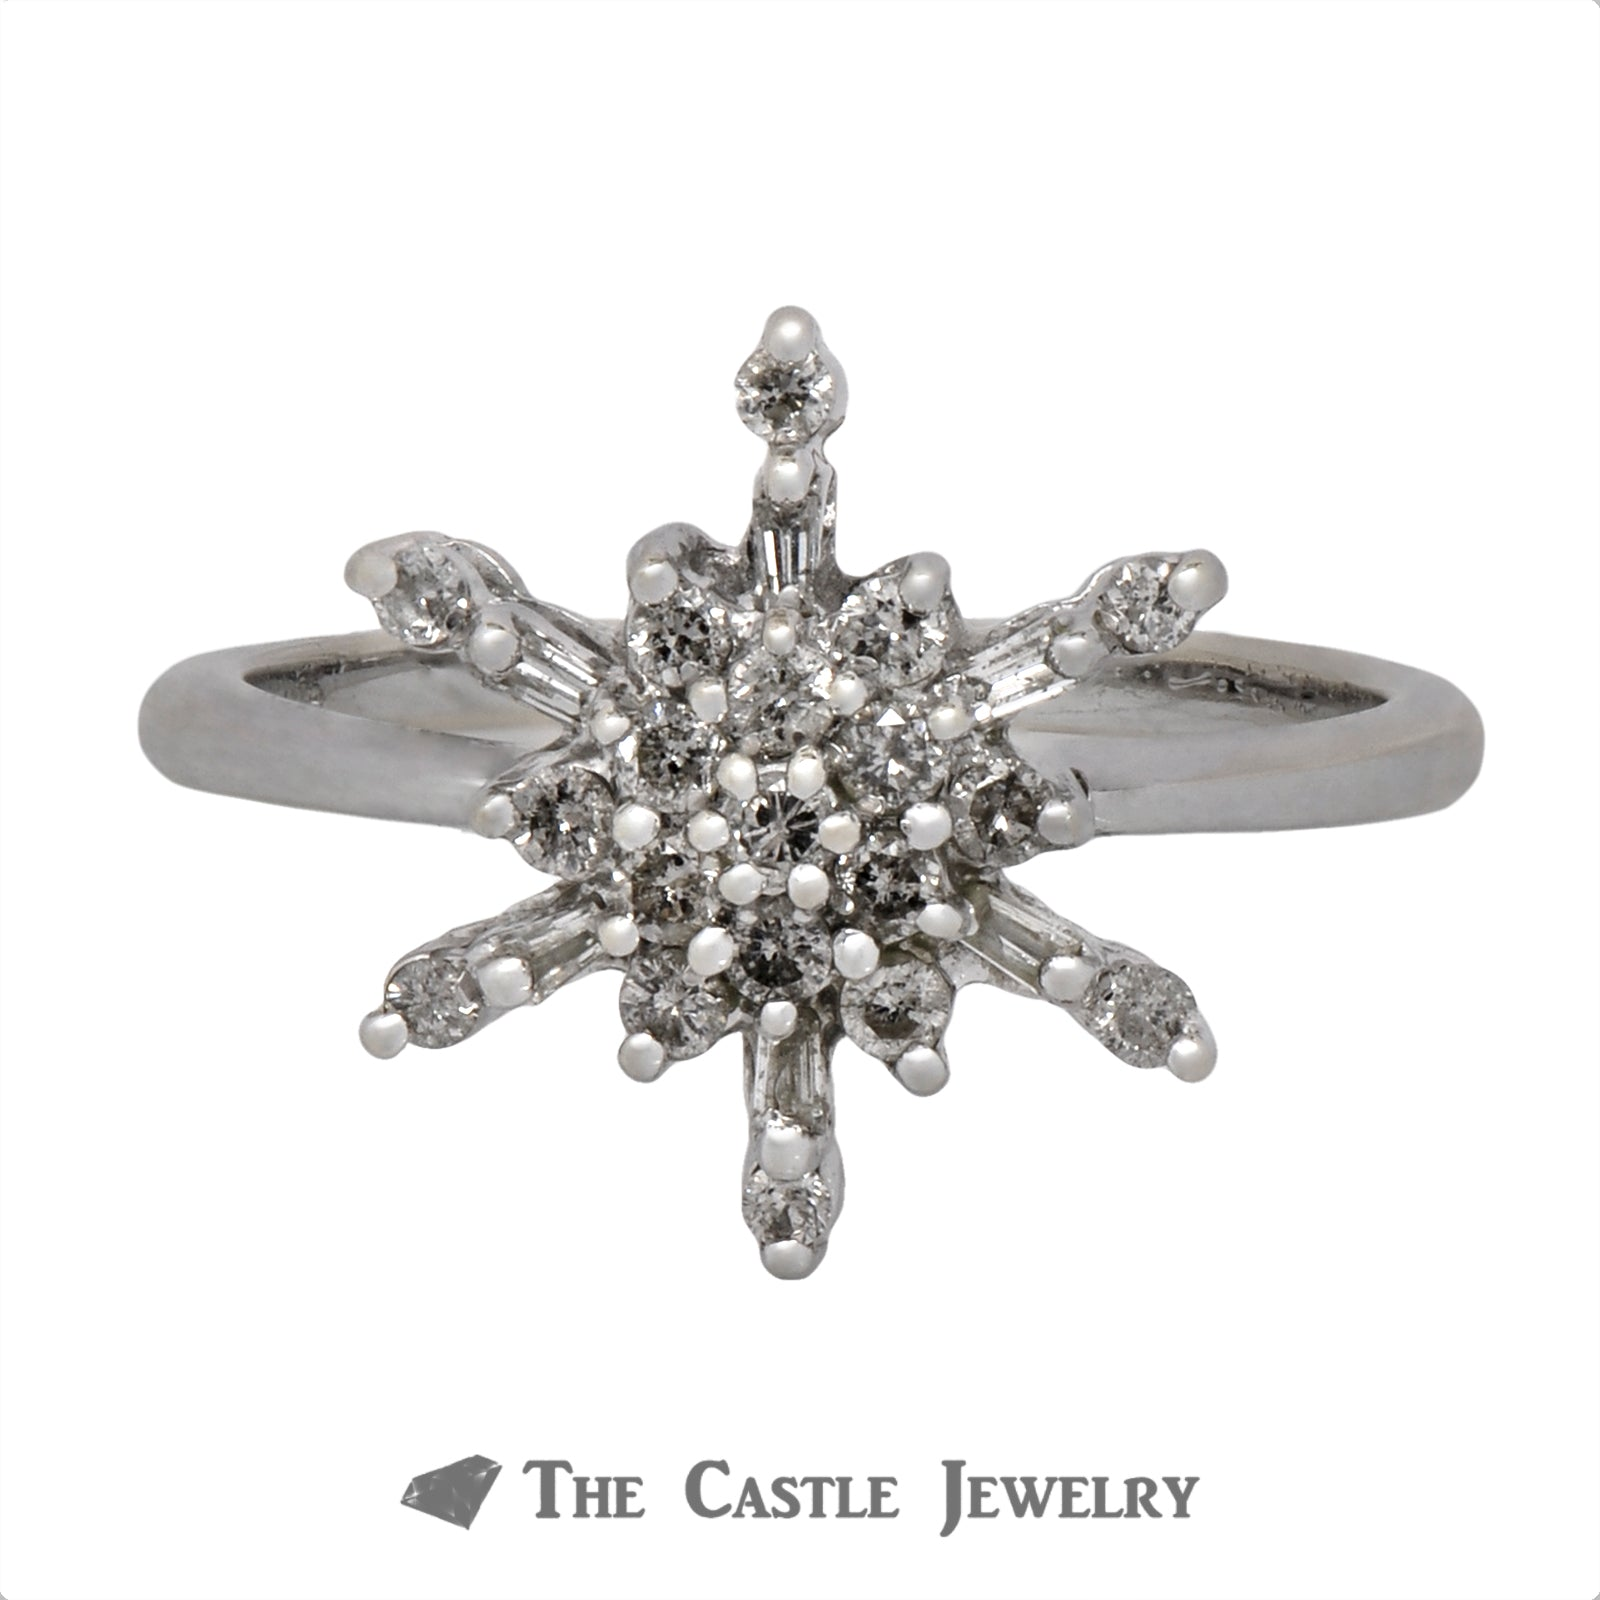 Diamond Cluster in Snowflake Design Crafted in 14k White Gold